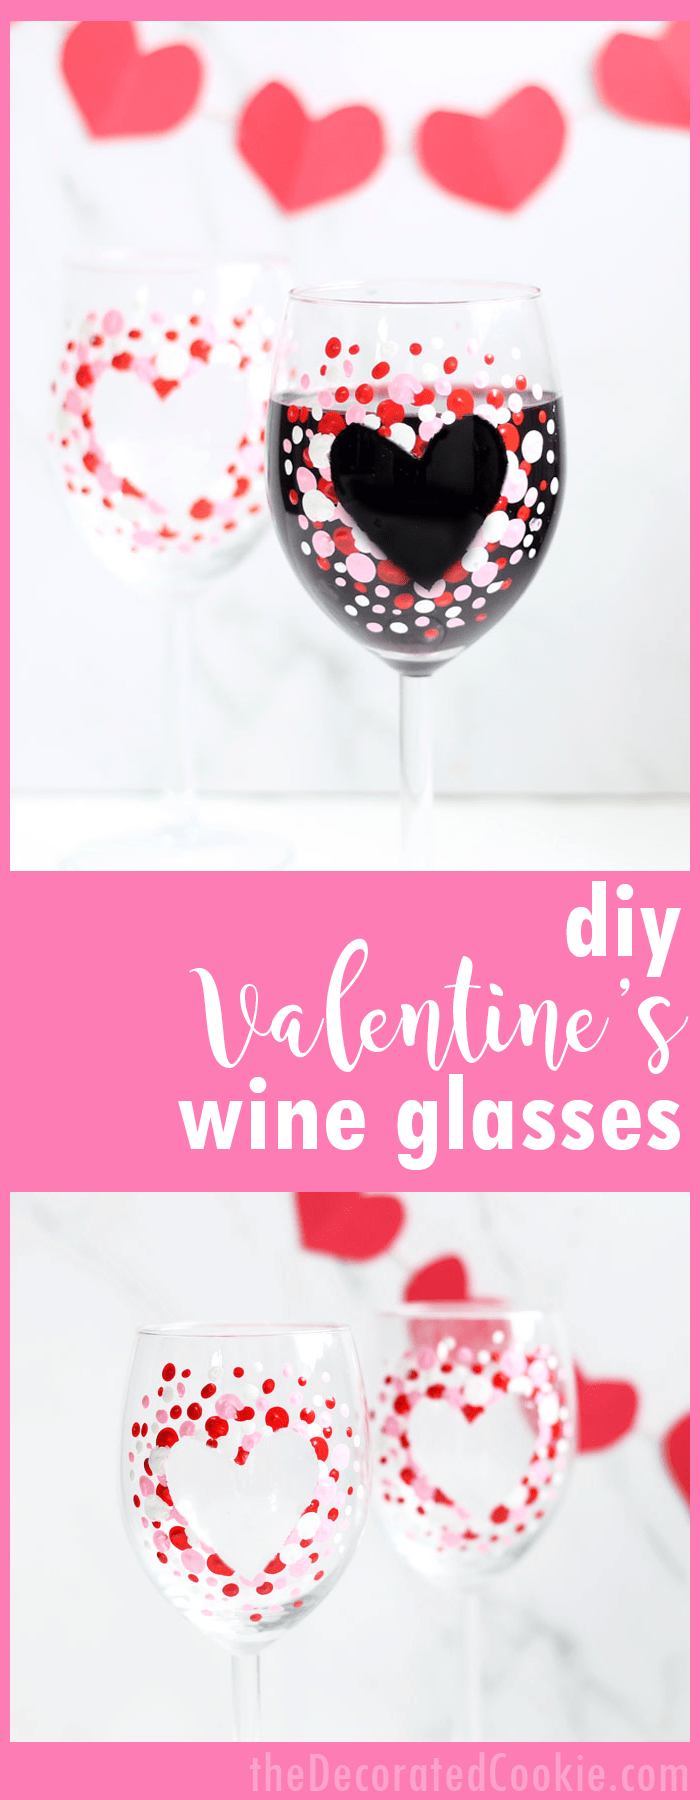 how to paint valentines day wine glasses a great diy valentines day gift idea